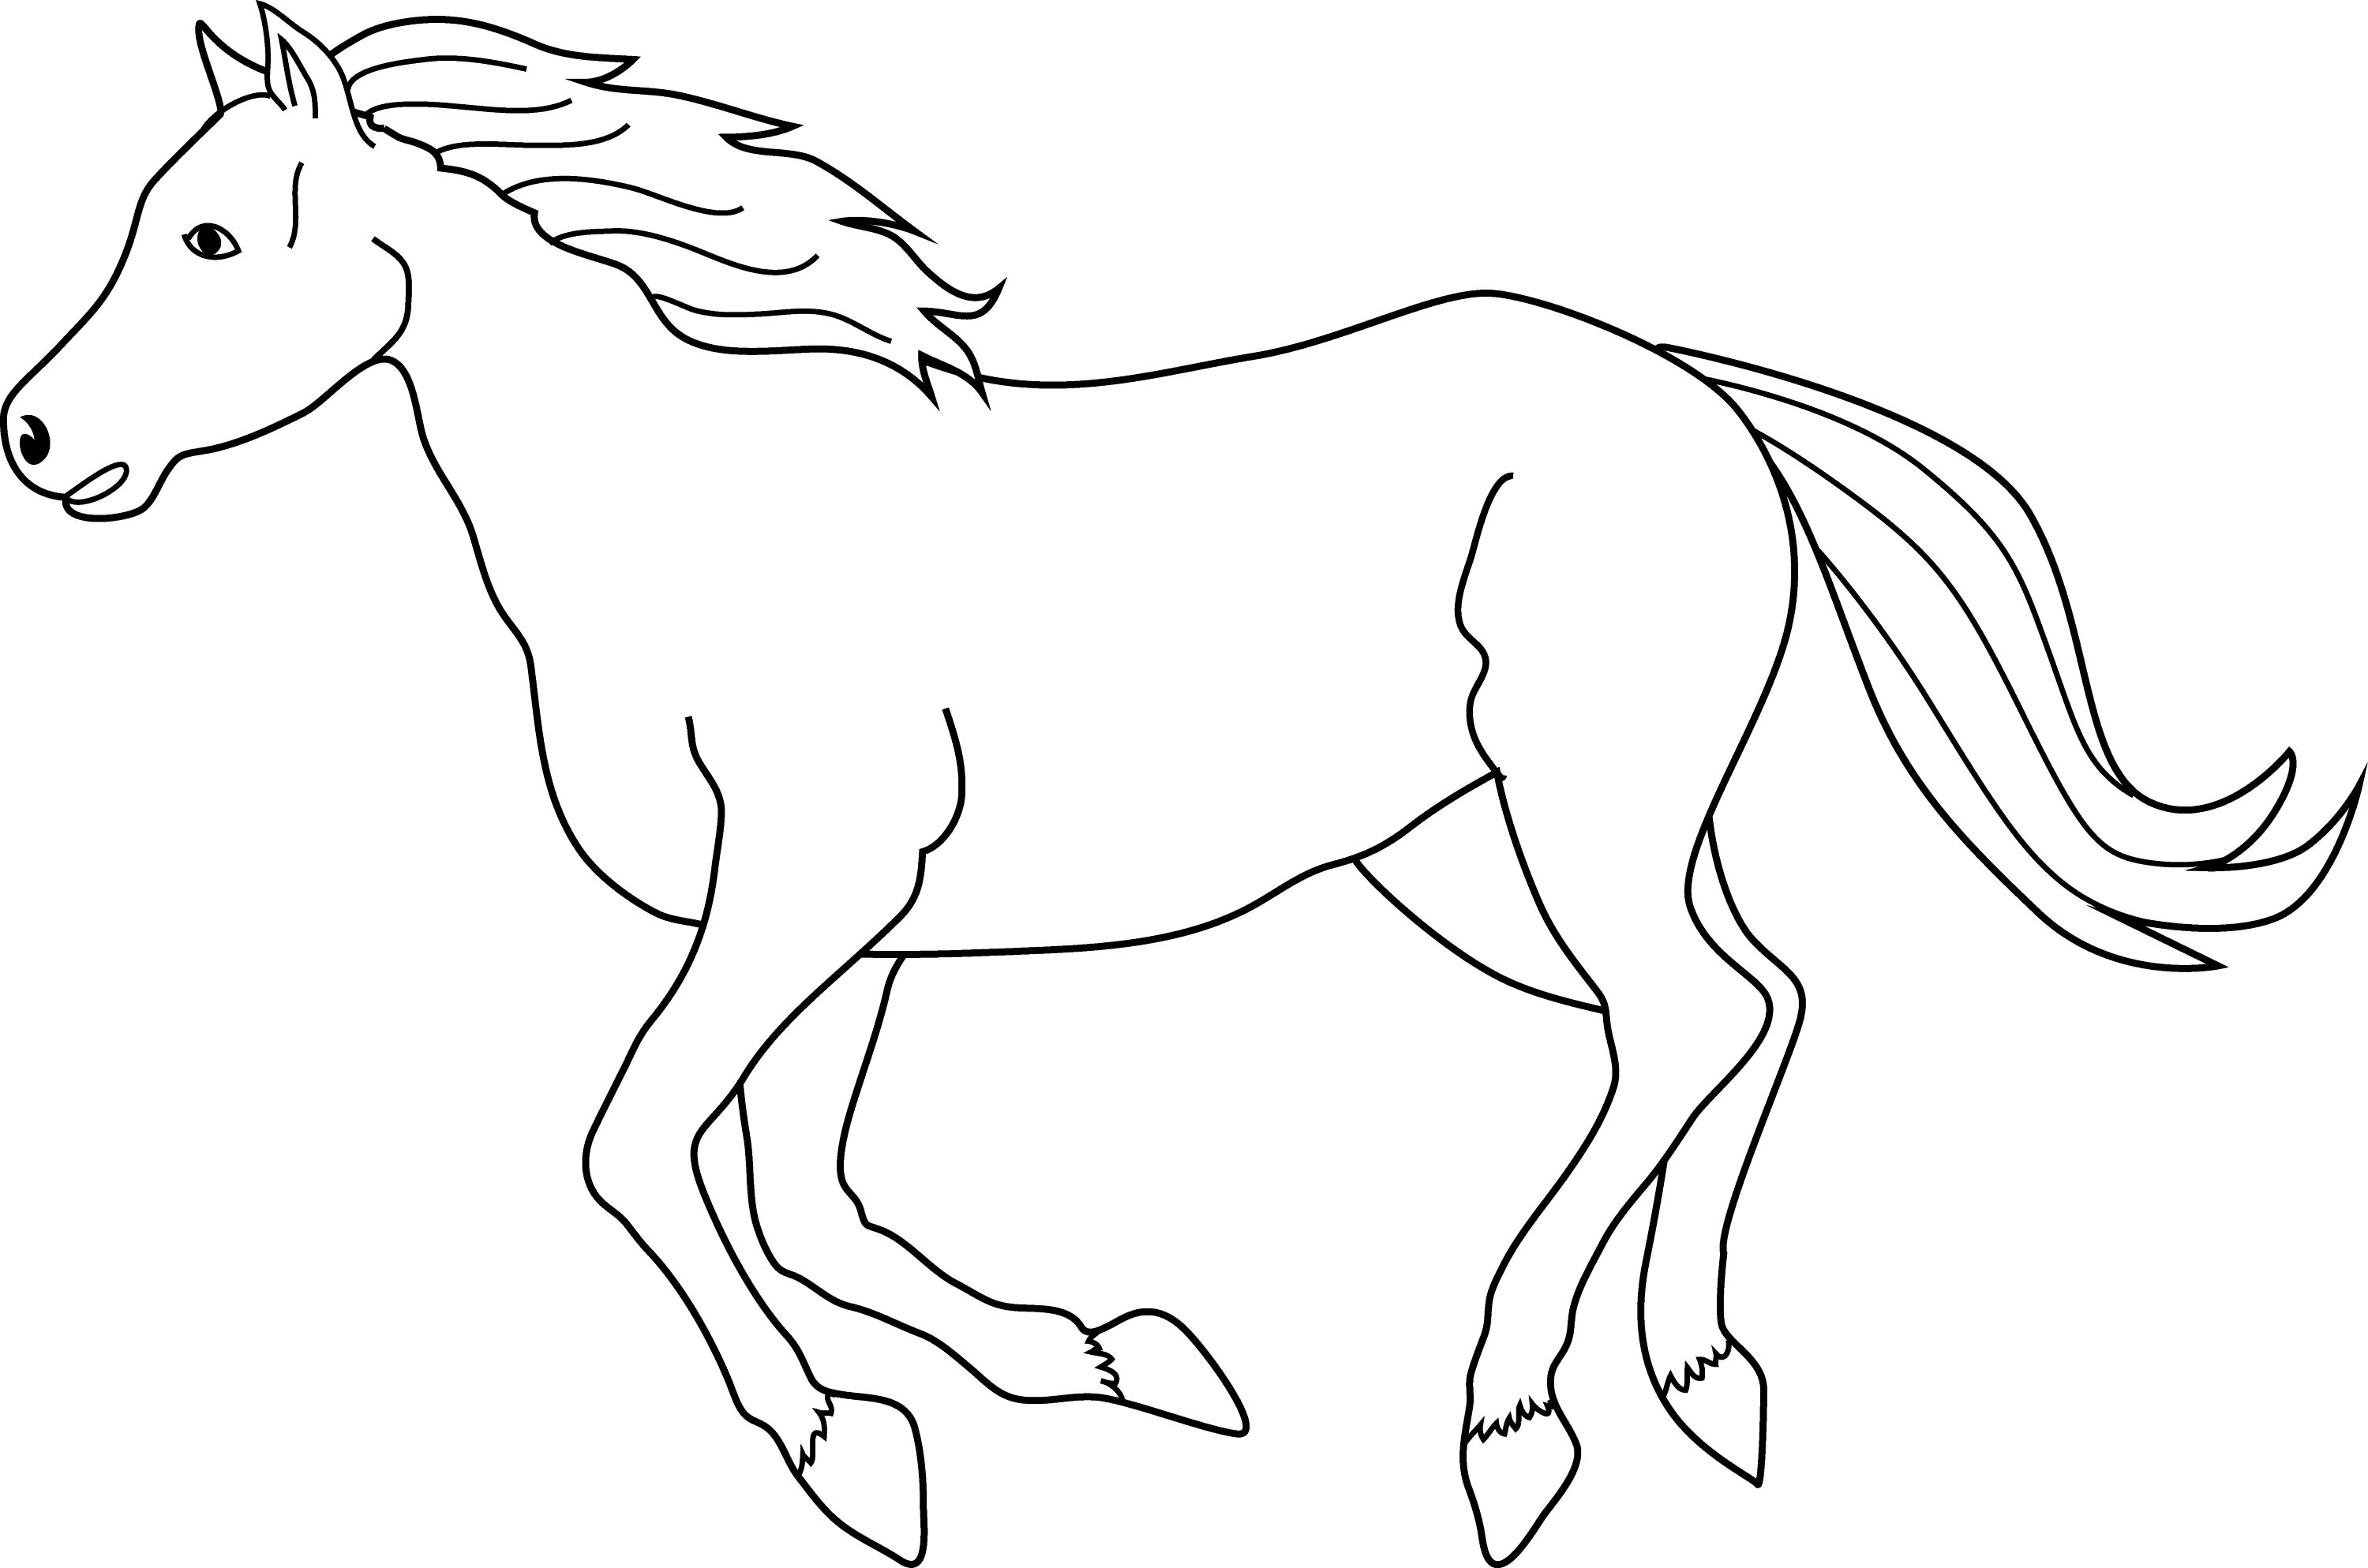 coloring horse clipart horse coloring book free clipart best clipart coloring horse